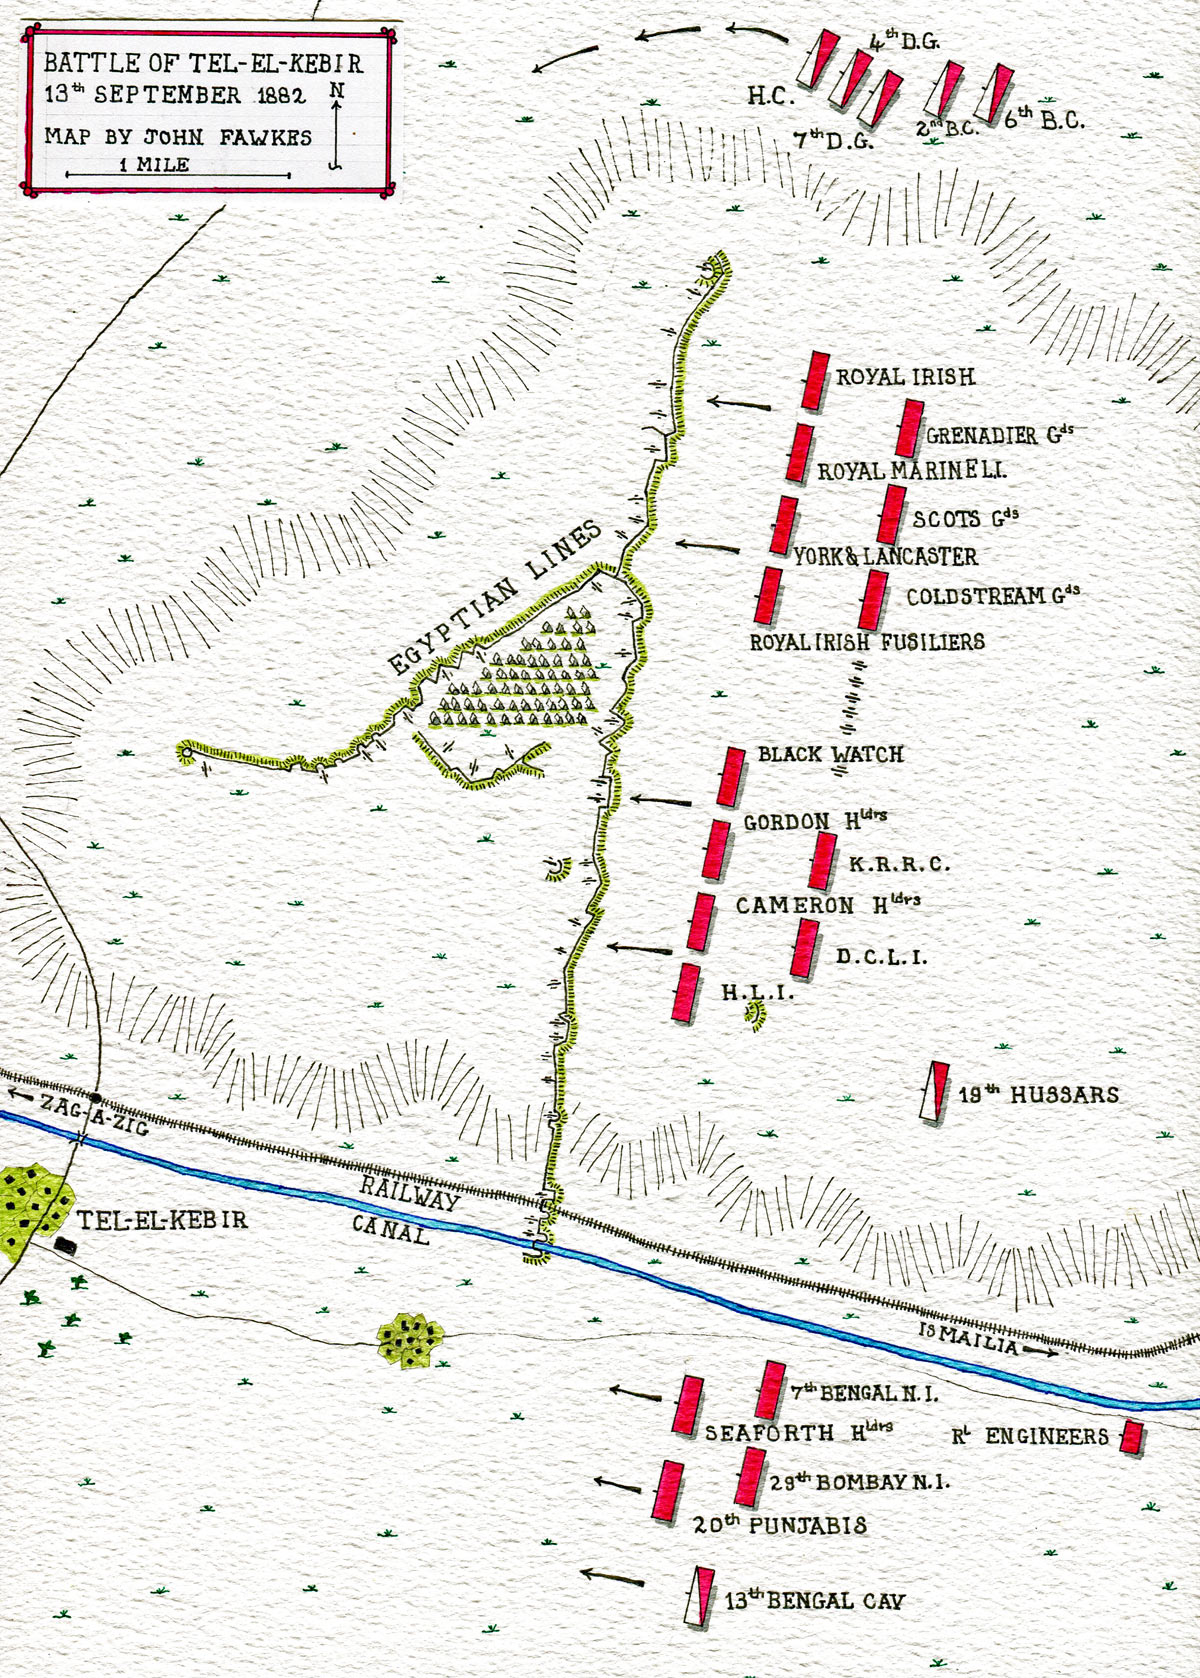 Map of the Battle of Tel-el-Kebir on 13th September 1882 in the Egyptian War: map by John Fawkes